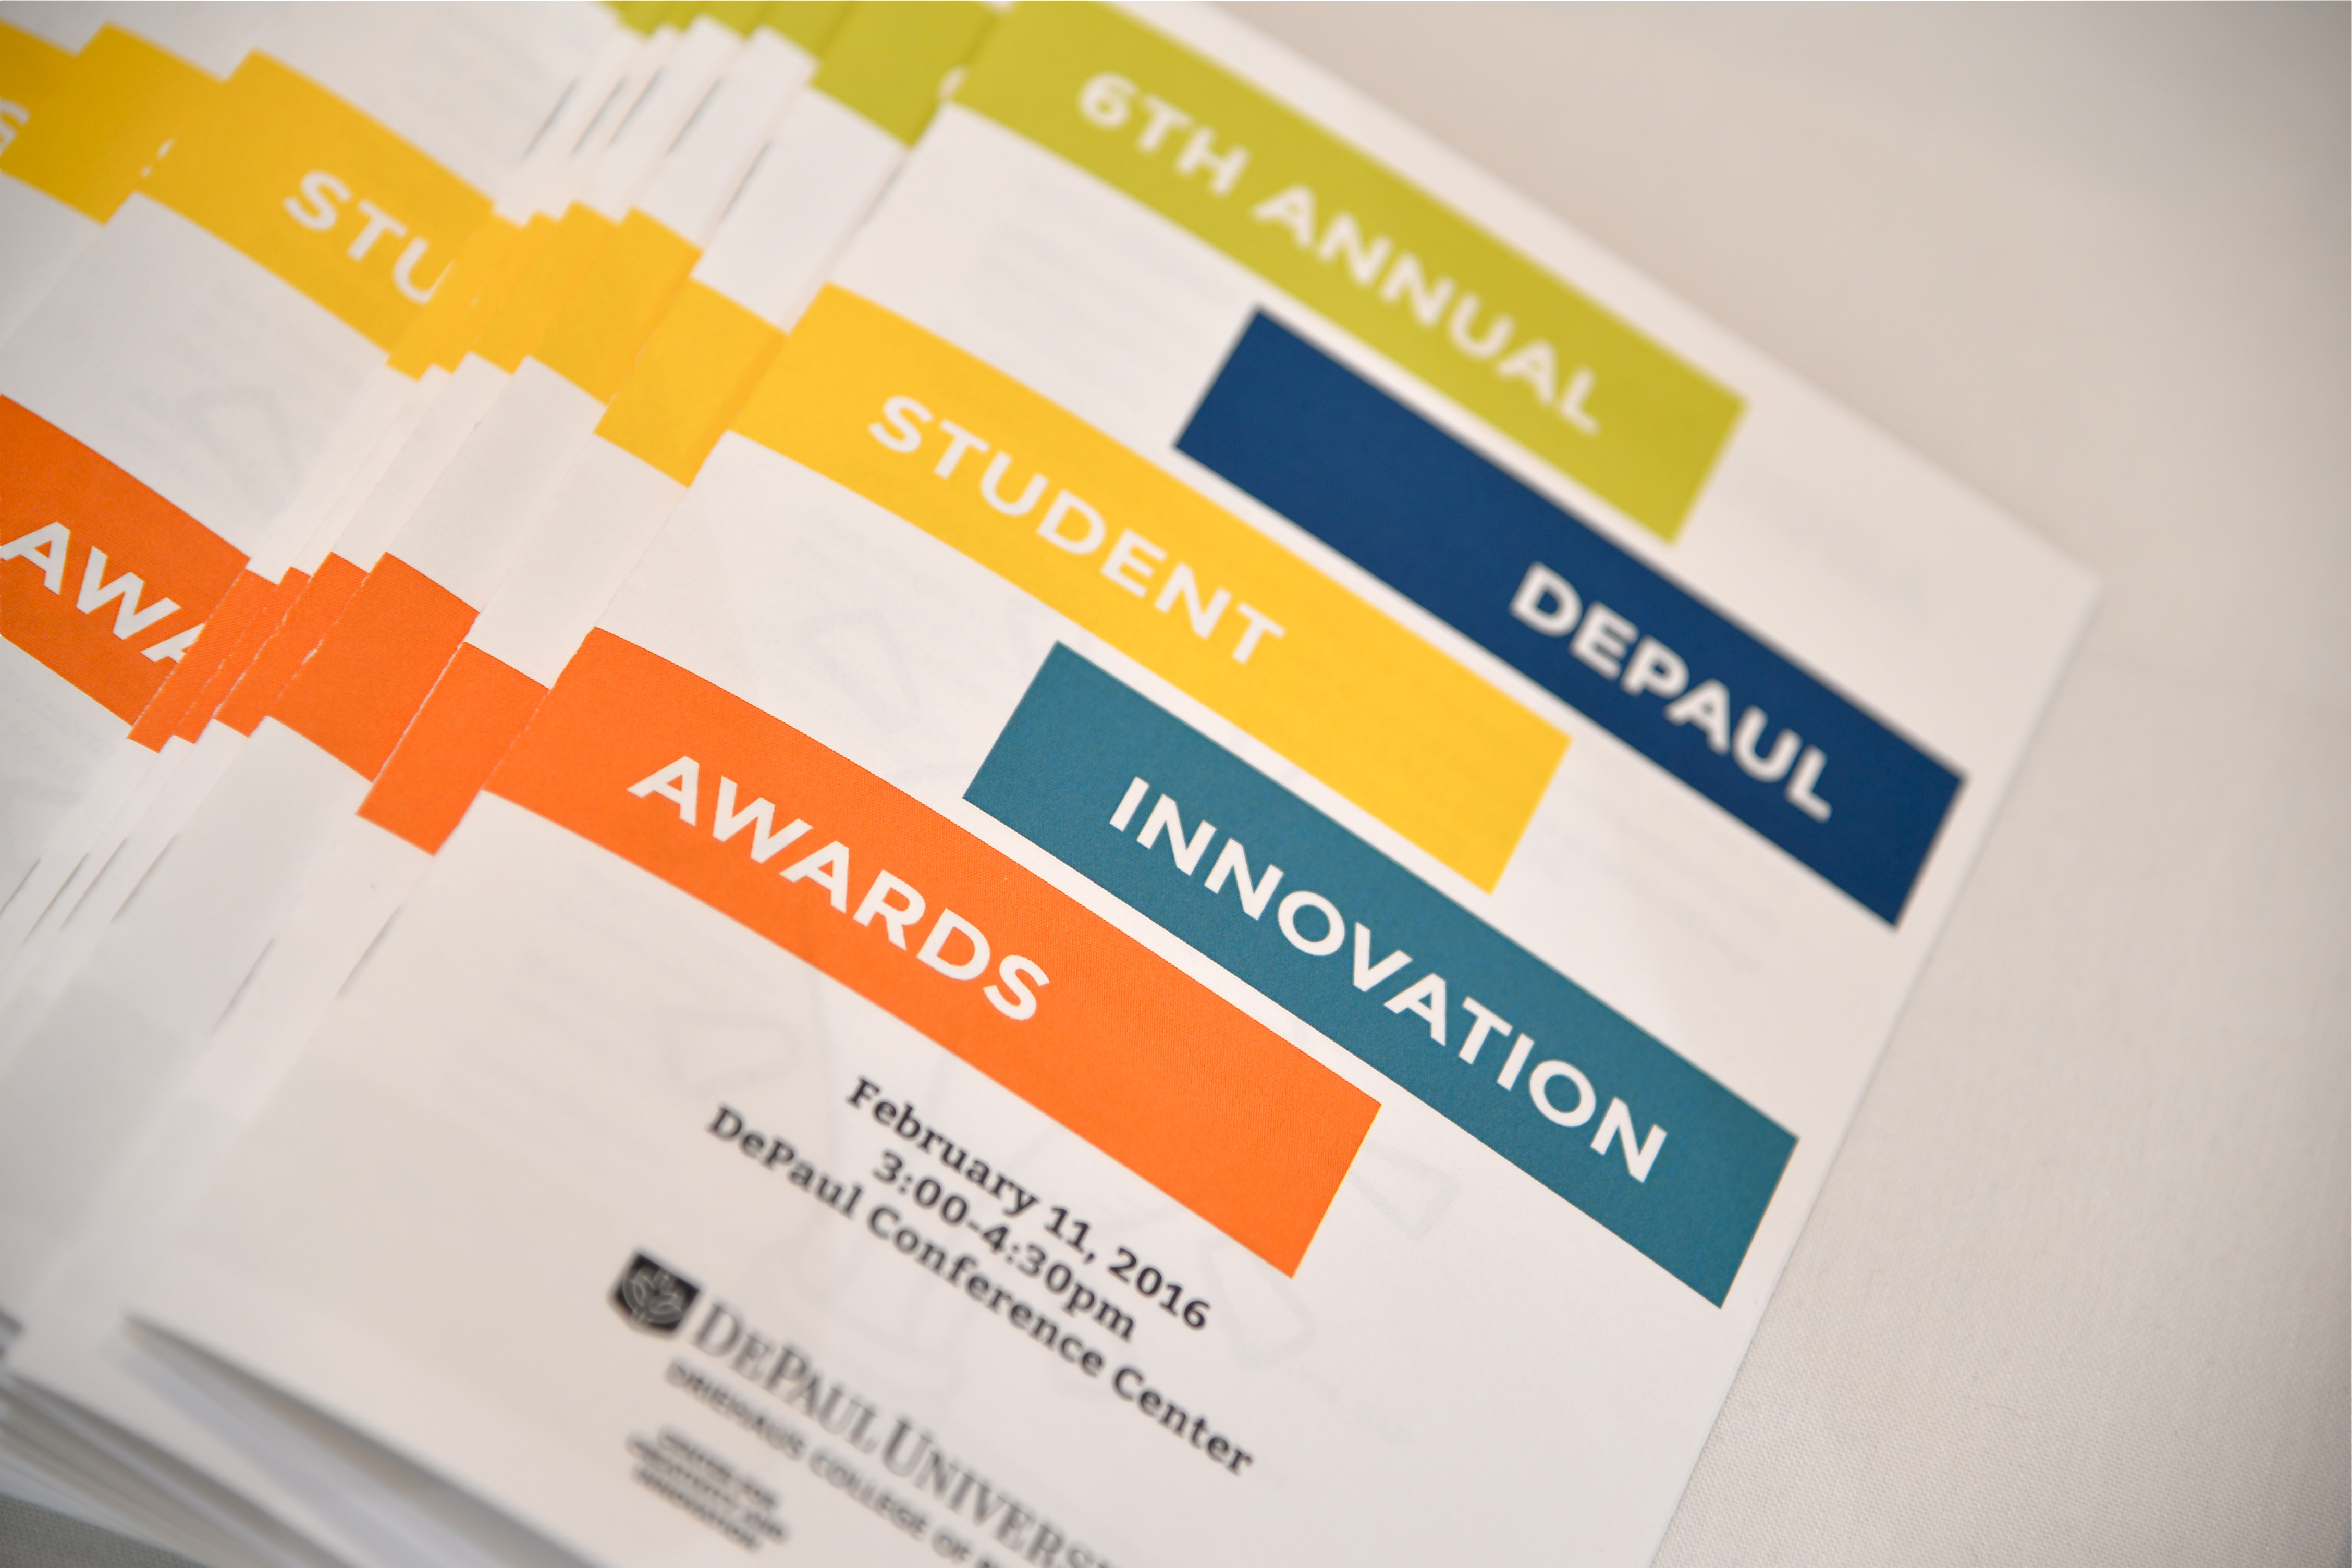 Student Innovation Awards pamphlet